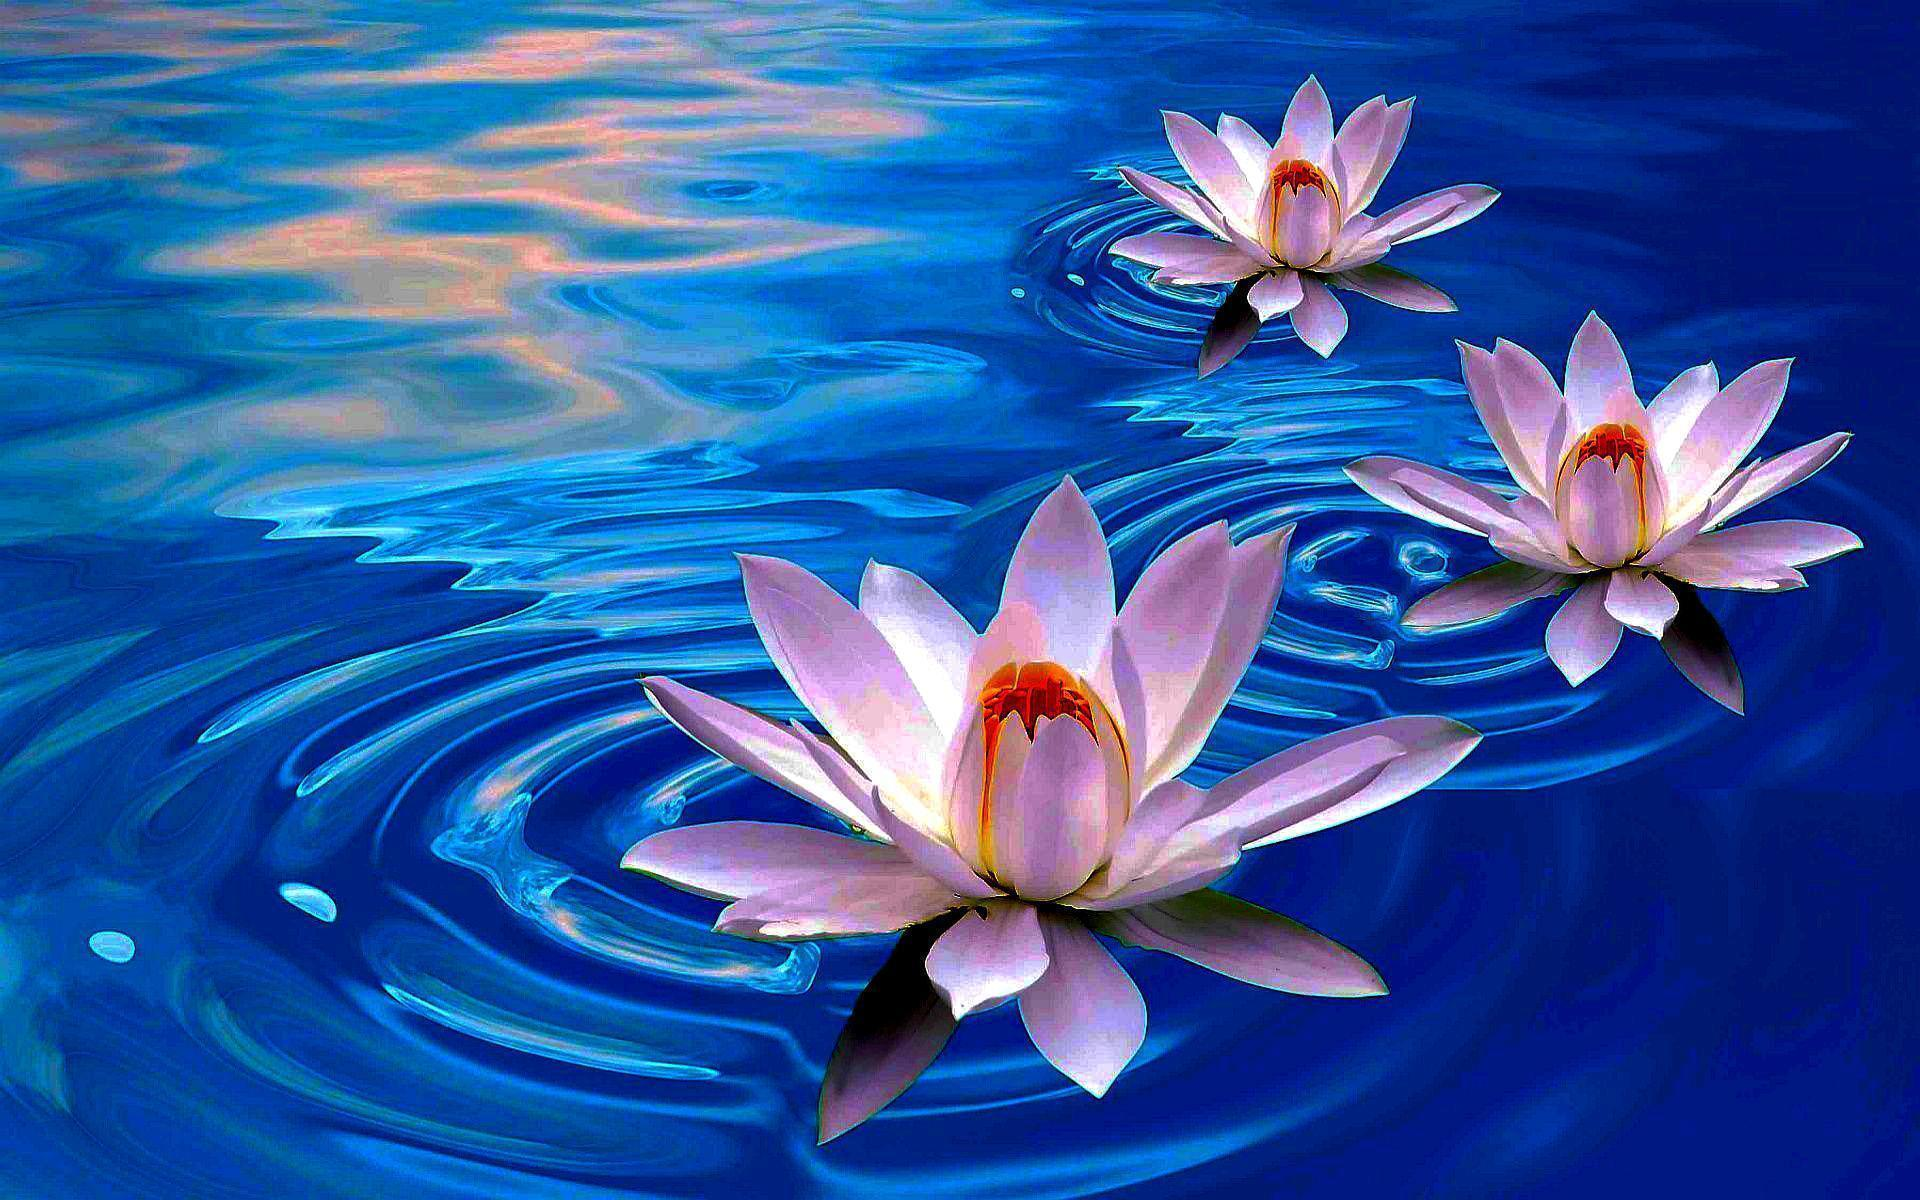 Lotus flower wallpapers wallpaper cave lotus flowers hd wallpapers wallpapers top 10 izmirmasajfo